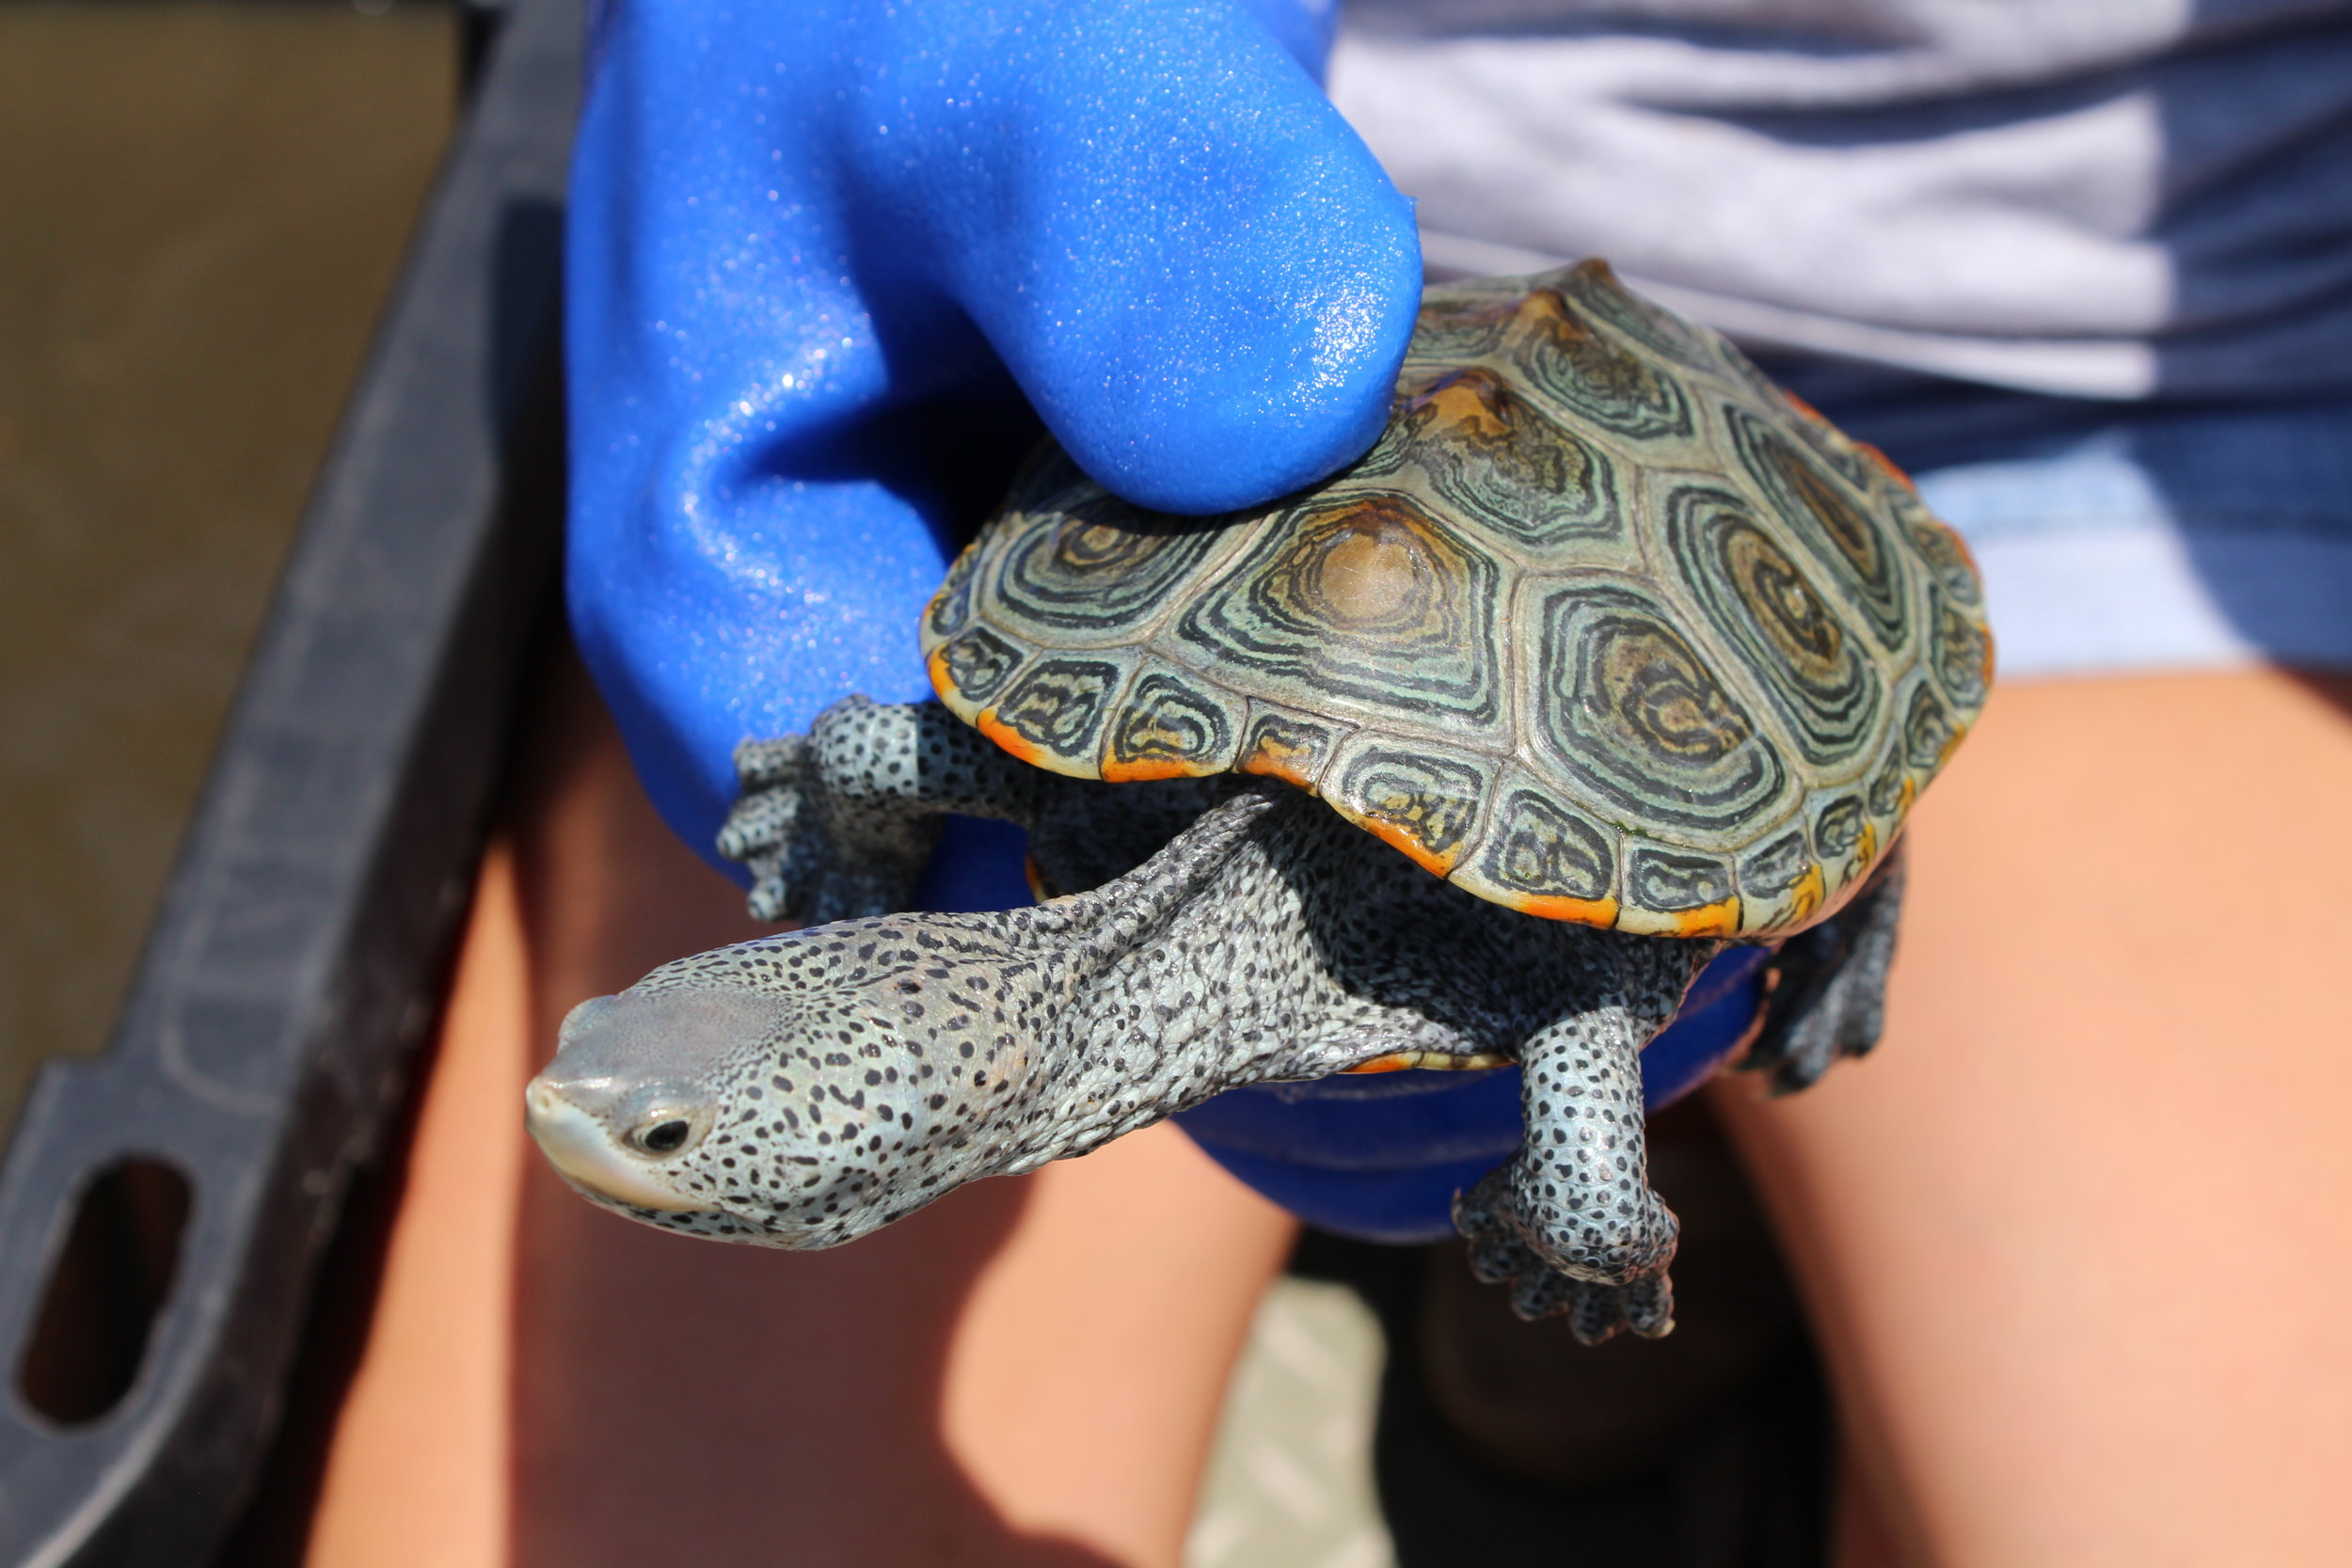 Diamondback terrapins are only found in the salt marshes of the East and Gulf Coasts, and their skin and shells come in a range of striking colors and patterns. (Photo: E. Weeks/SCDNR)